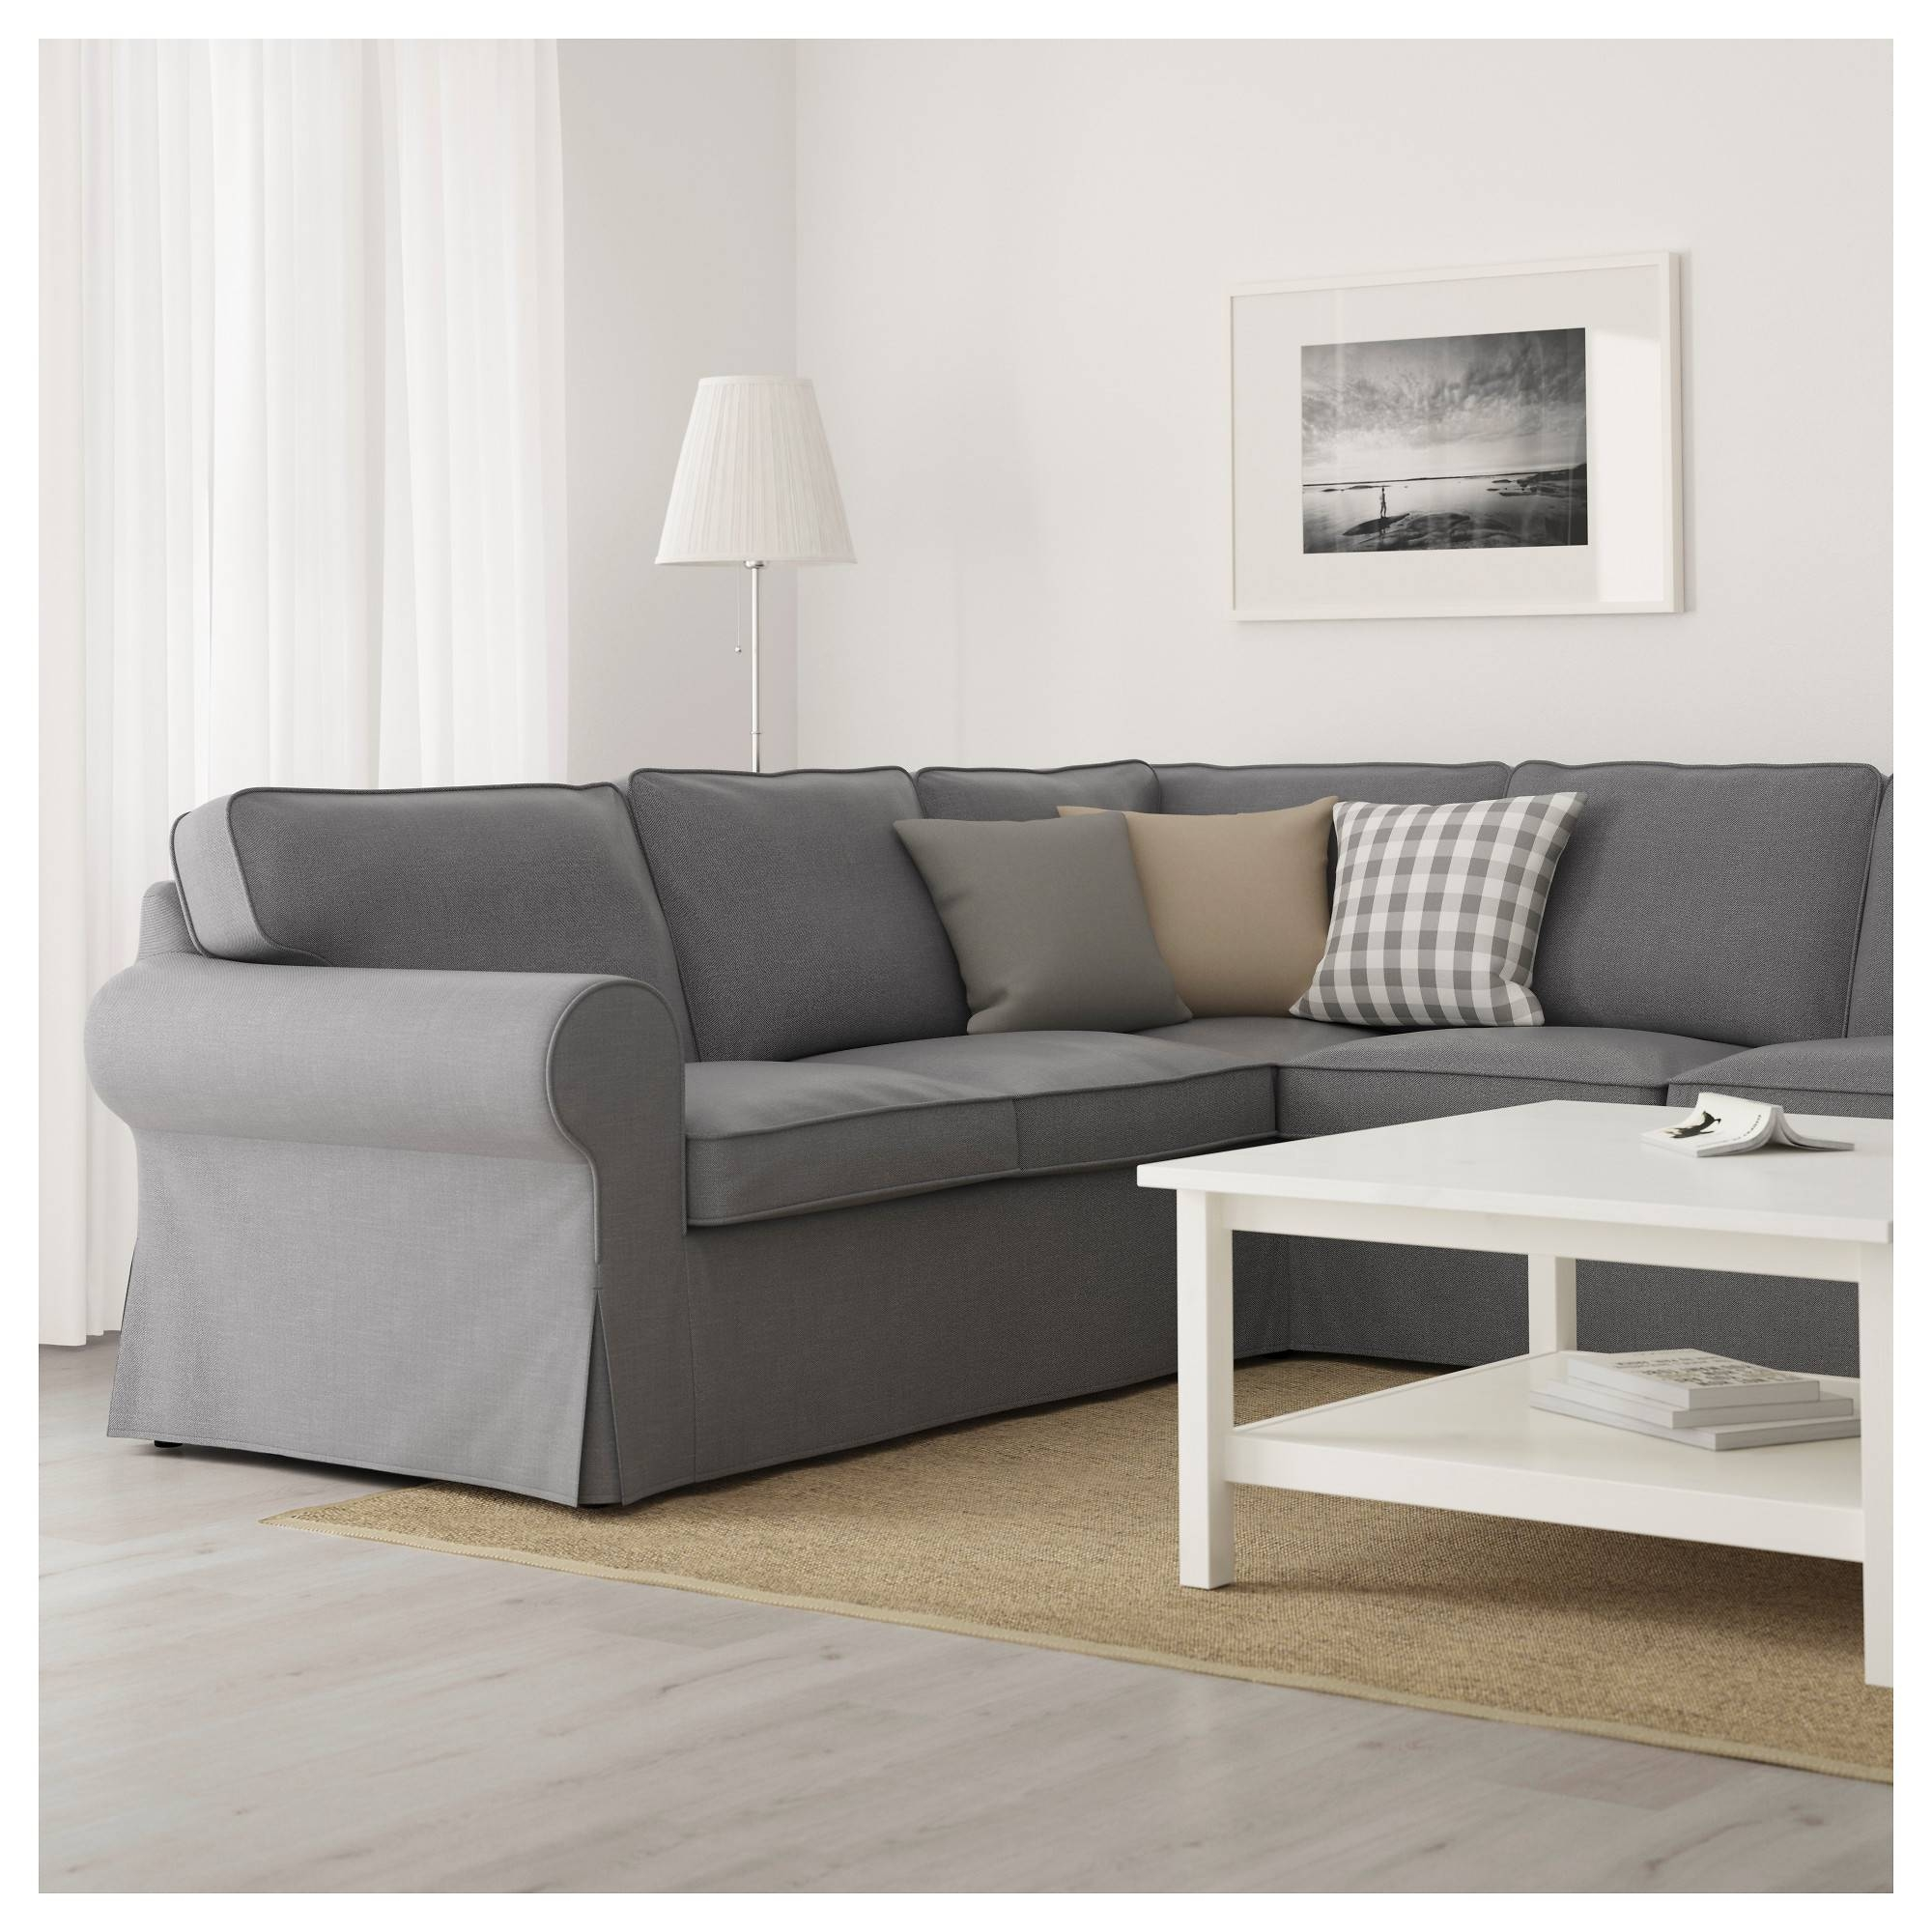 Ektorp Sectional, 4-Seat Corner - Lofallet Beige - Ikea within 4 Seat Couch (Image 12 of 30)